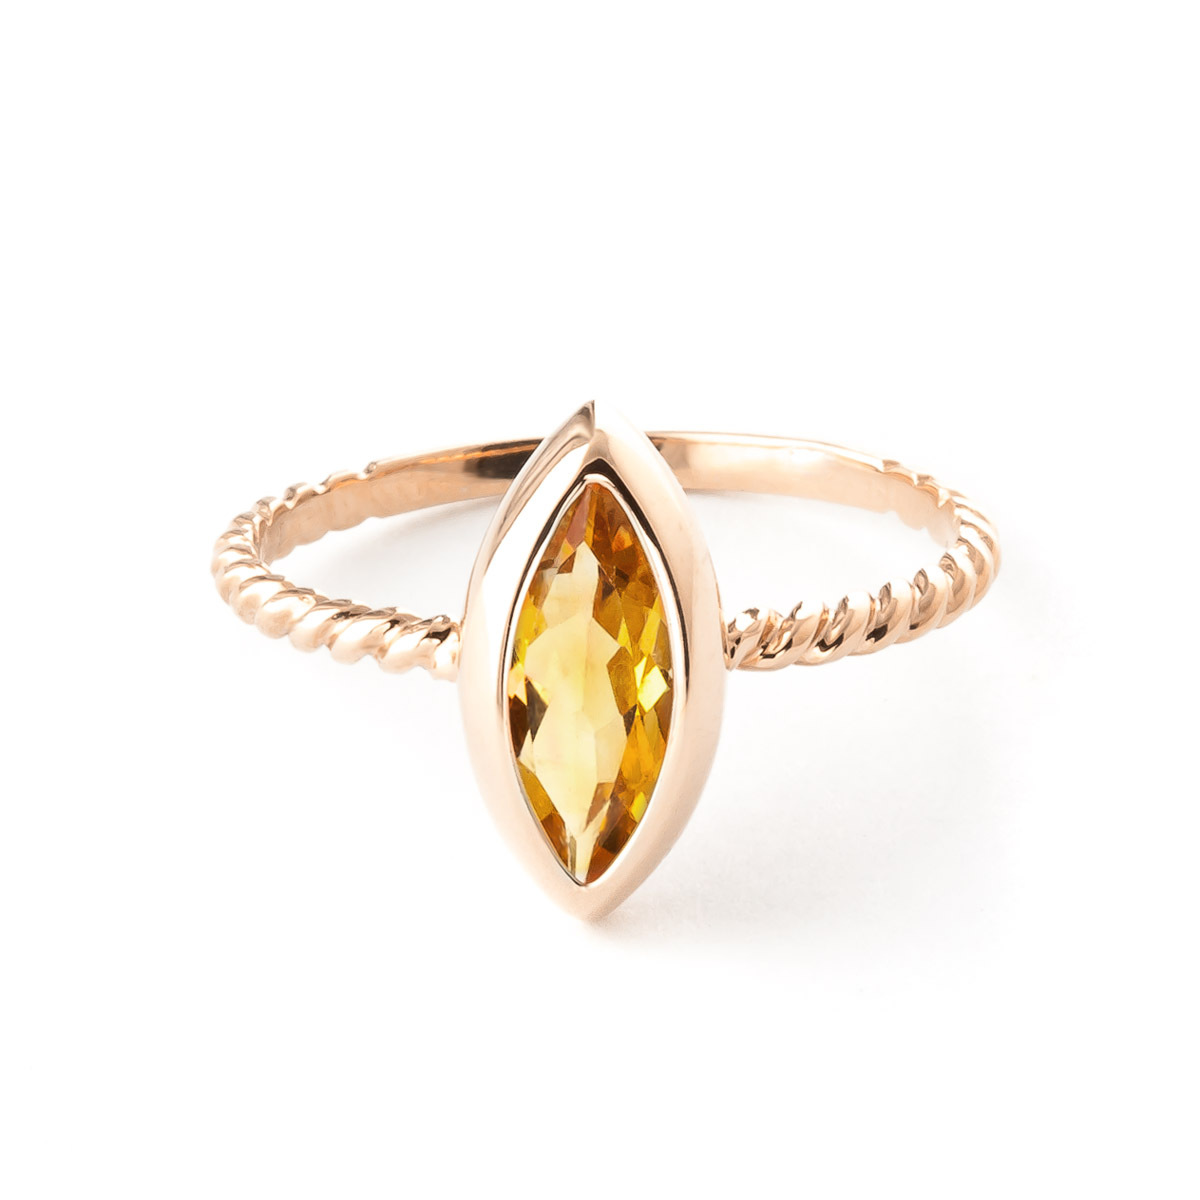 Marquise Cut Citrine Ring 1.7ct in 9ct Rose Gold